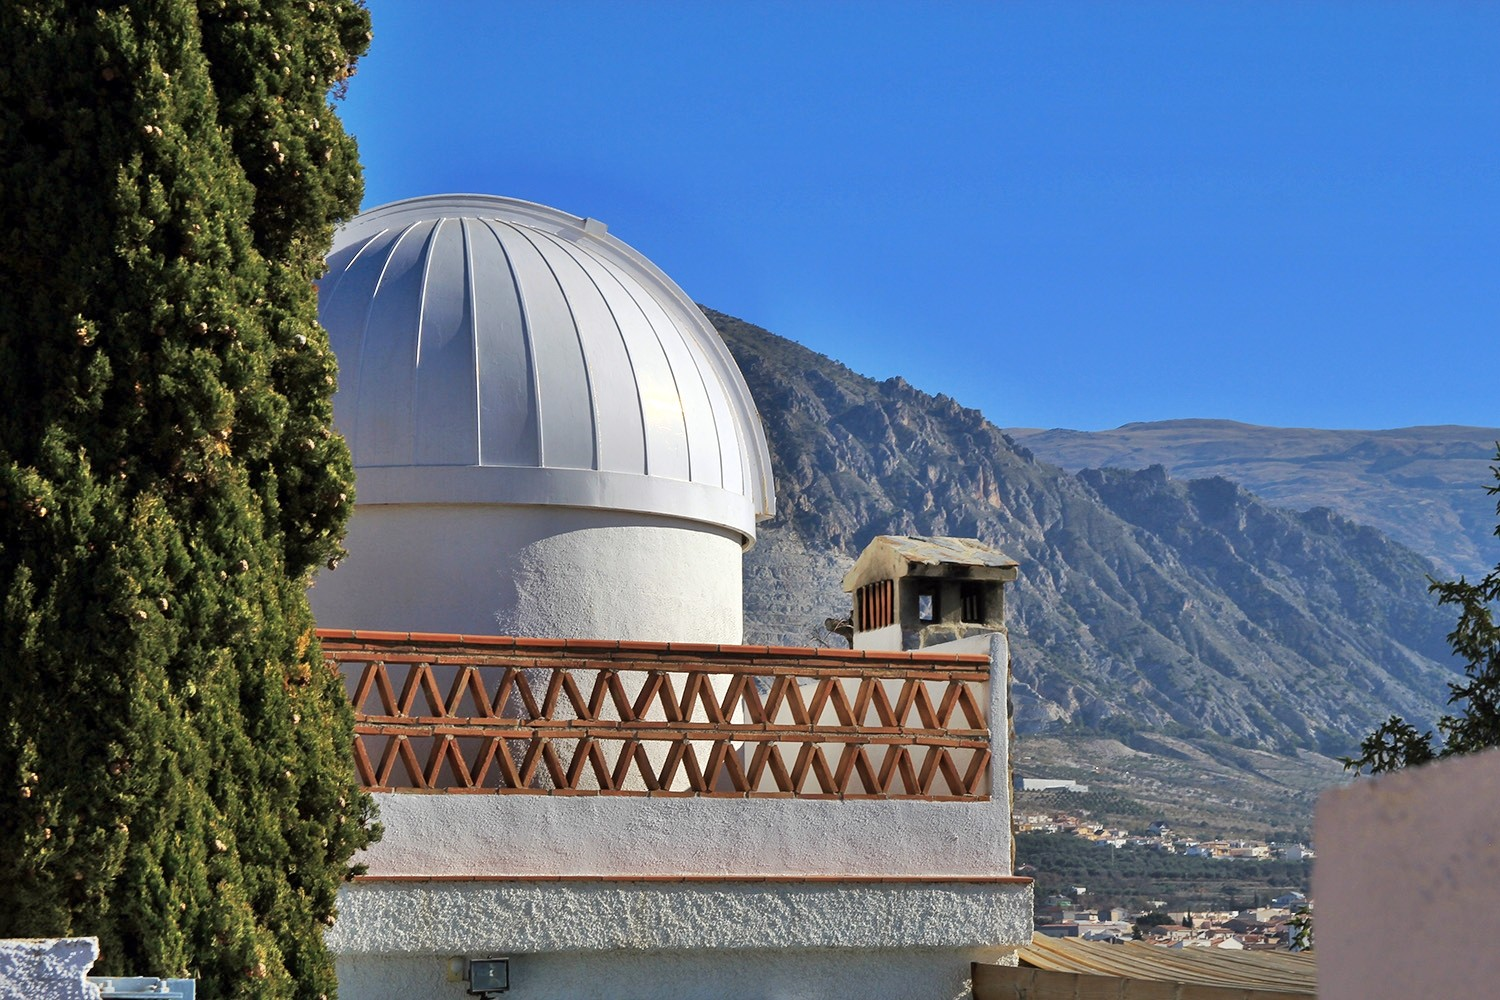 The astronomical observatory of the complex